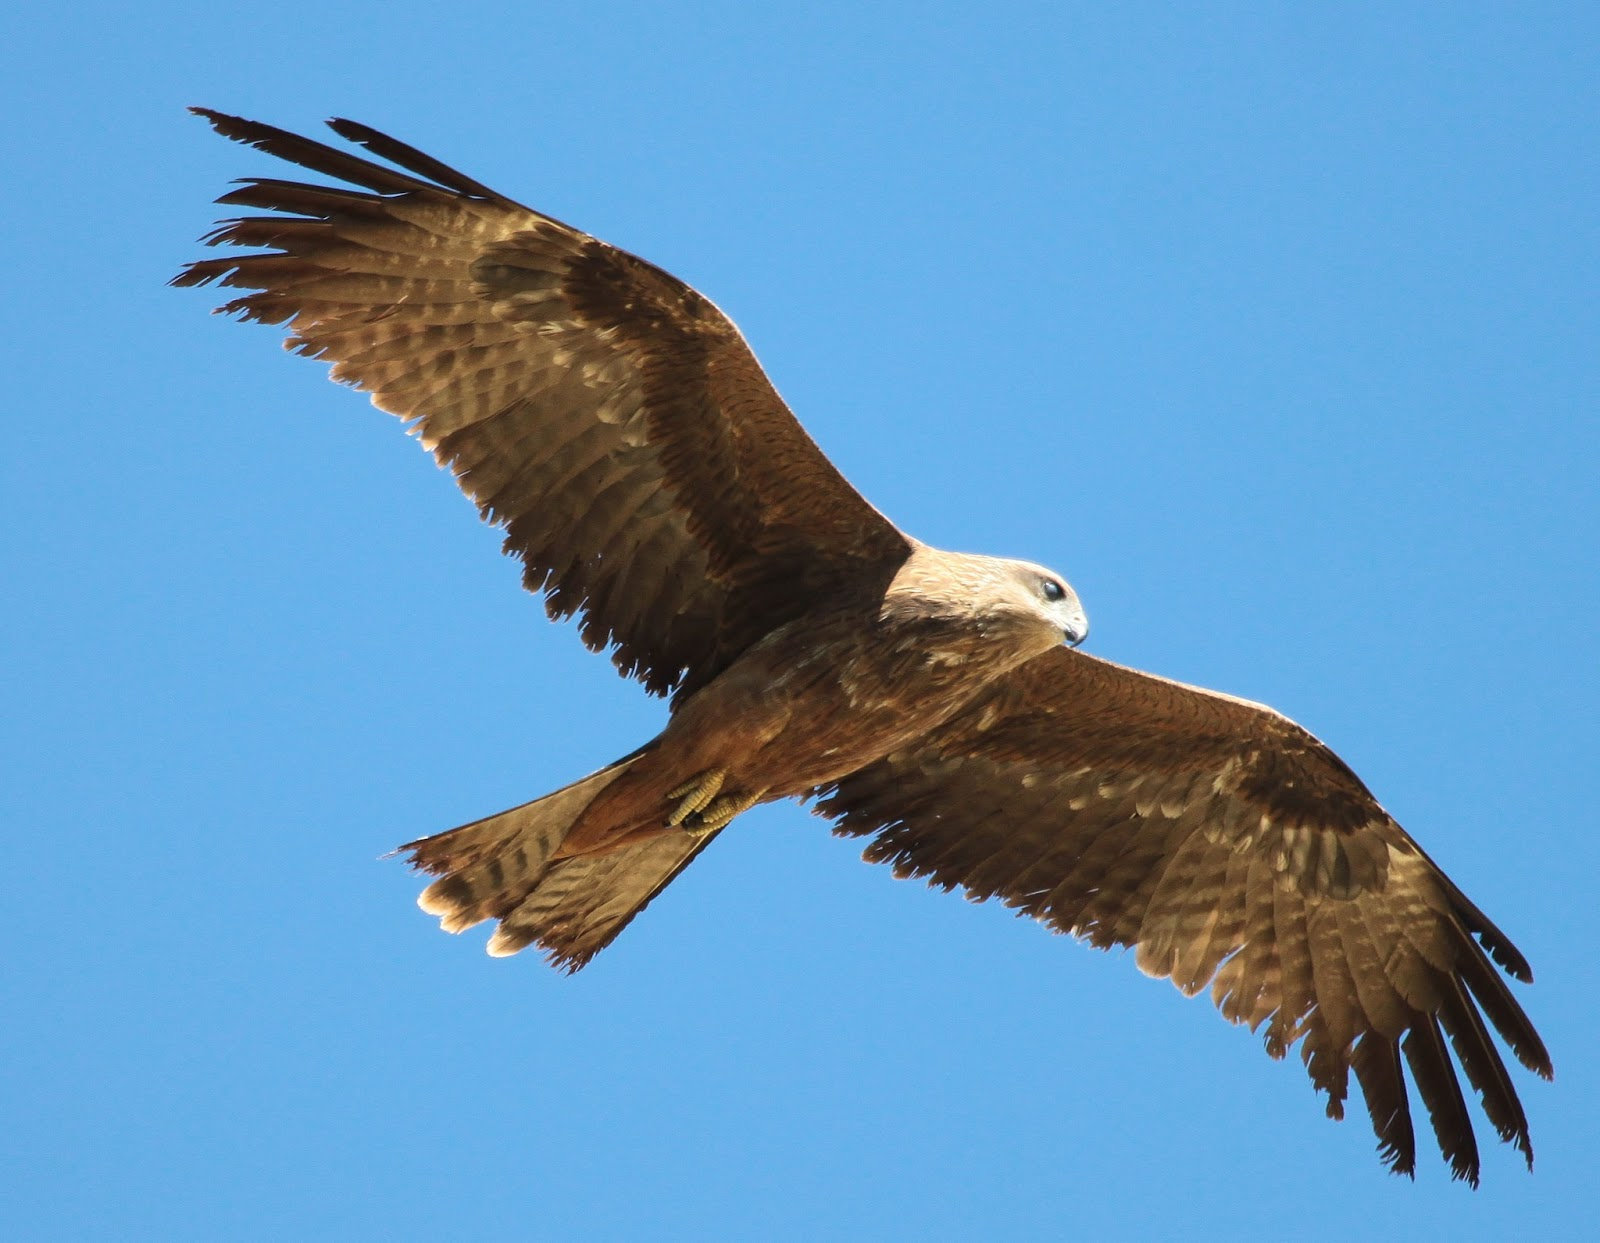 Black_Kite_2013_04_28_Backyard_02.jpg